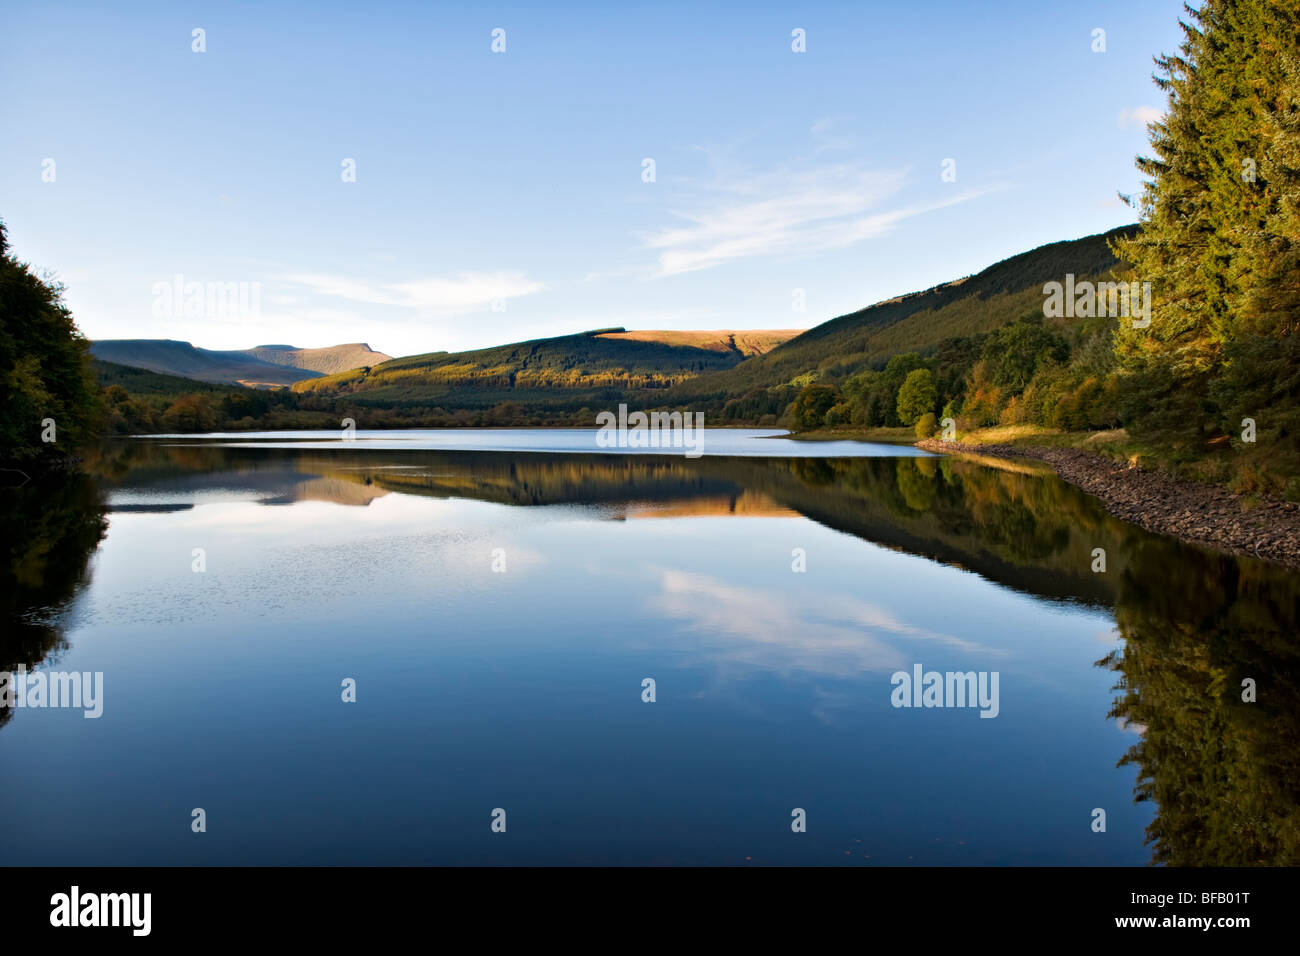 Pentwyn Reservoir (known locally as Dolygaer Lake) in the Brecon Beacons Mid-Wales early evening with reflection Stock Photo